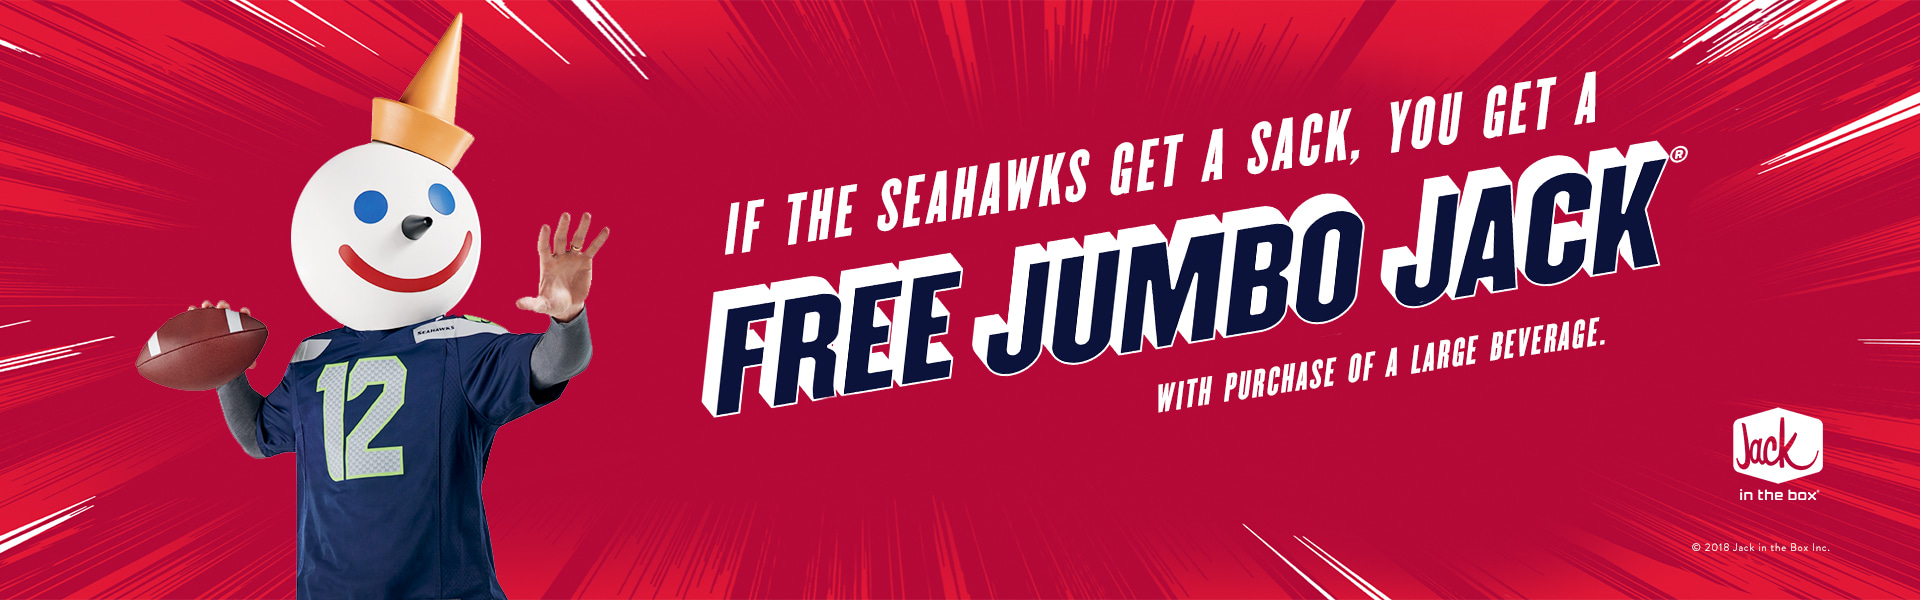 the opposing teams quarterback during any home or away game all fans receive a free jumbo jack with any beverage purchase at jack in the box the day - Jack In The Box Open Christmas Day